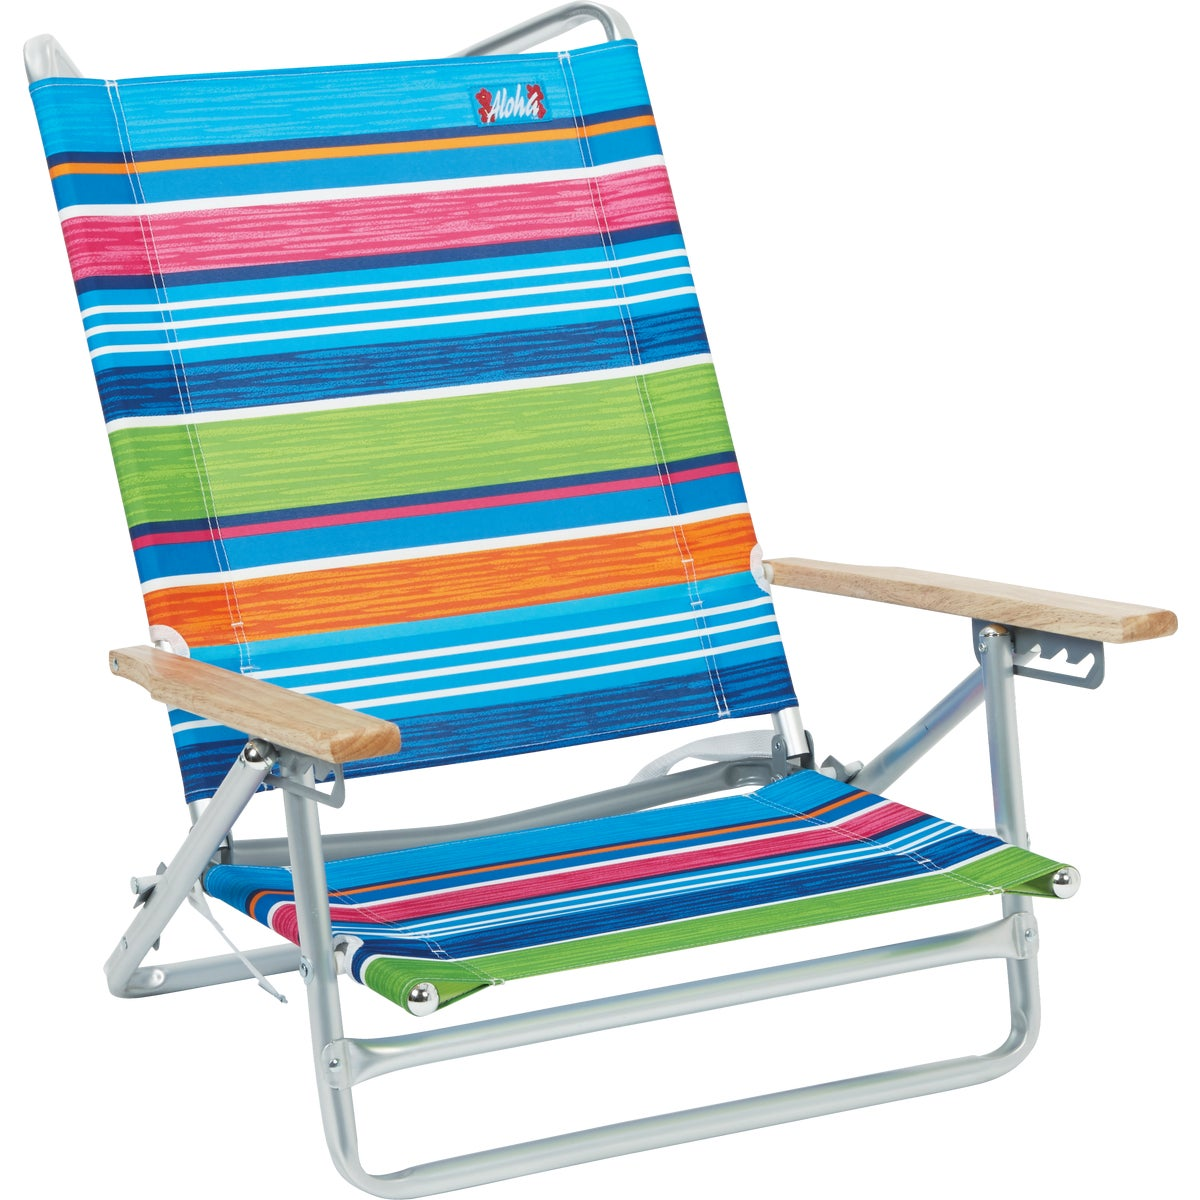 DELUXE BEACH CHAIR - SC595-1307 by Rio Brands  Ningbo1